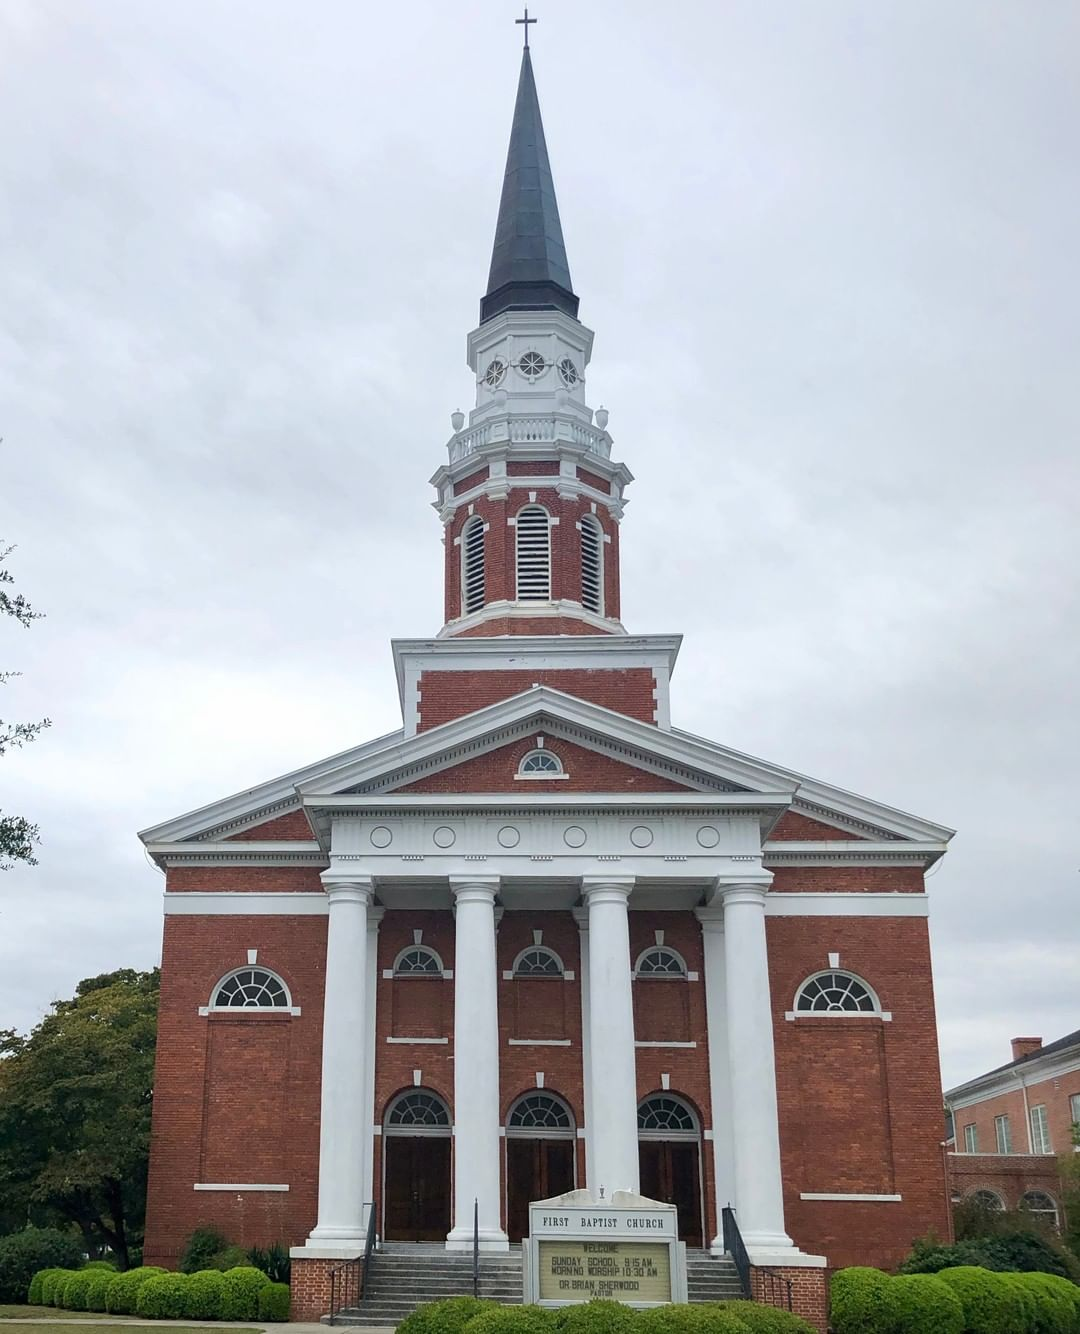 The First Baptist Church in Darlington was built in 1912. The congregation was established in 1831 as the Darlington Baptist Church of Christ. The church was renamed when this current structure was built